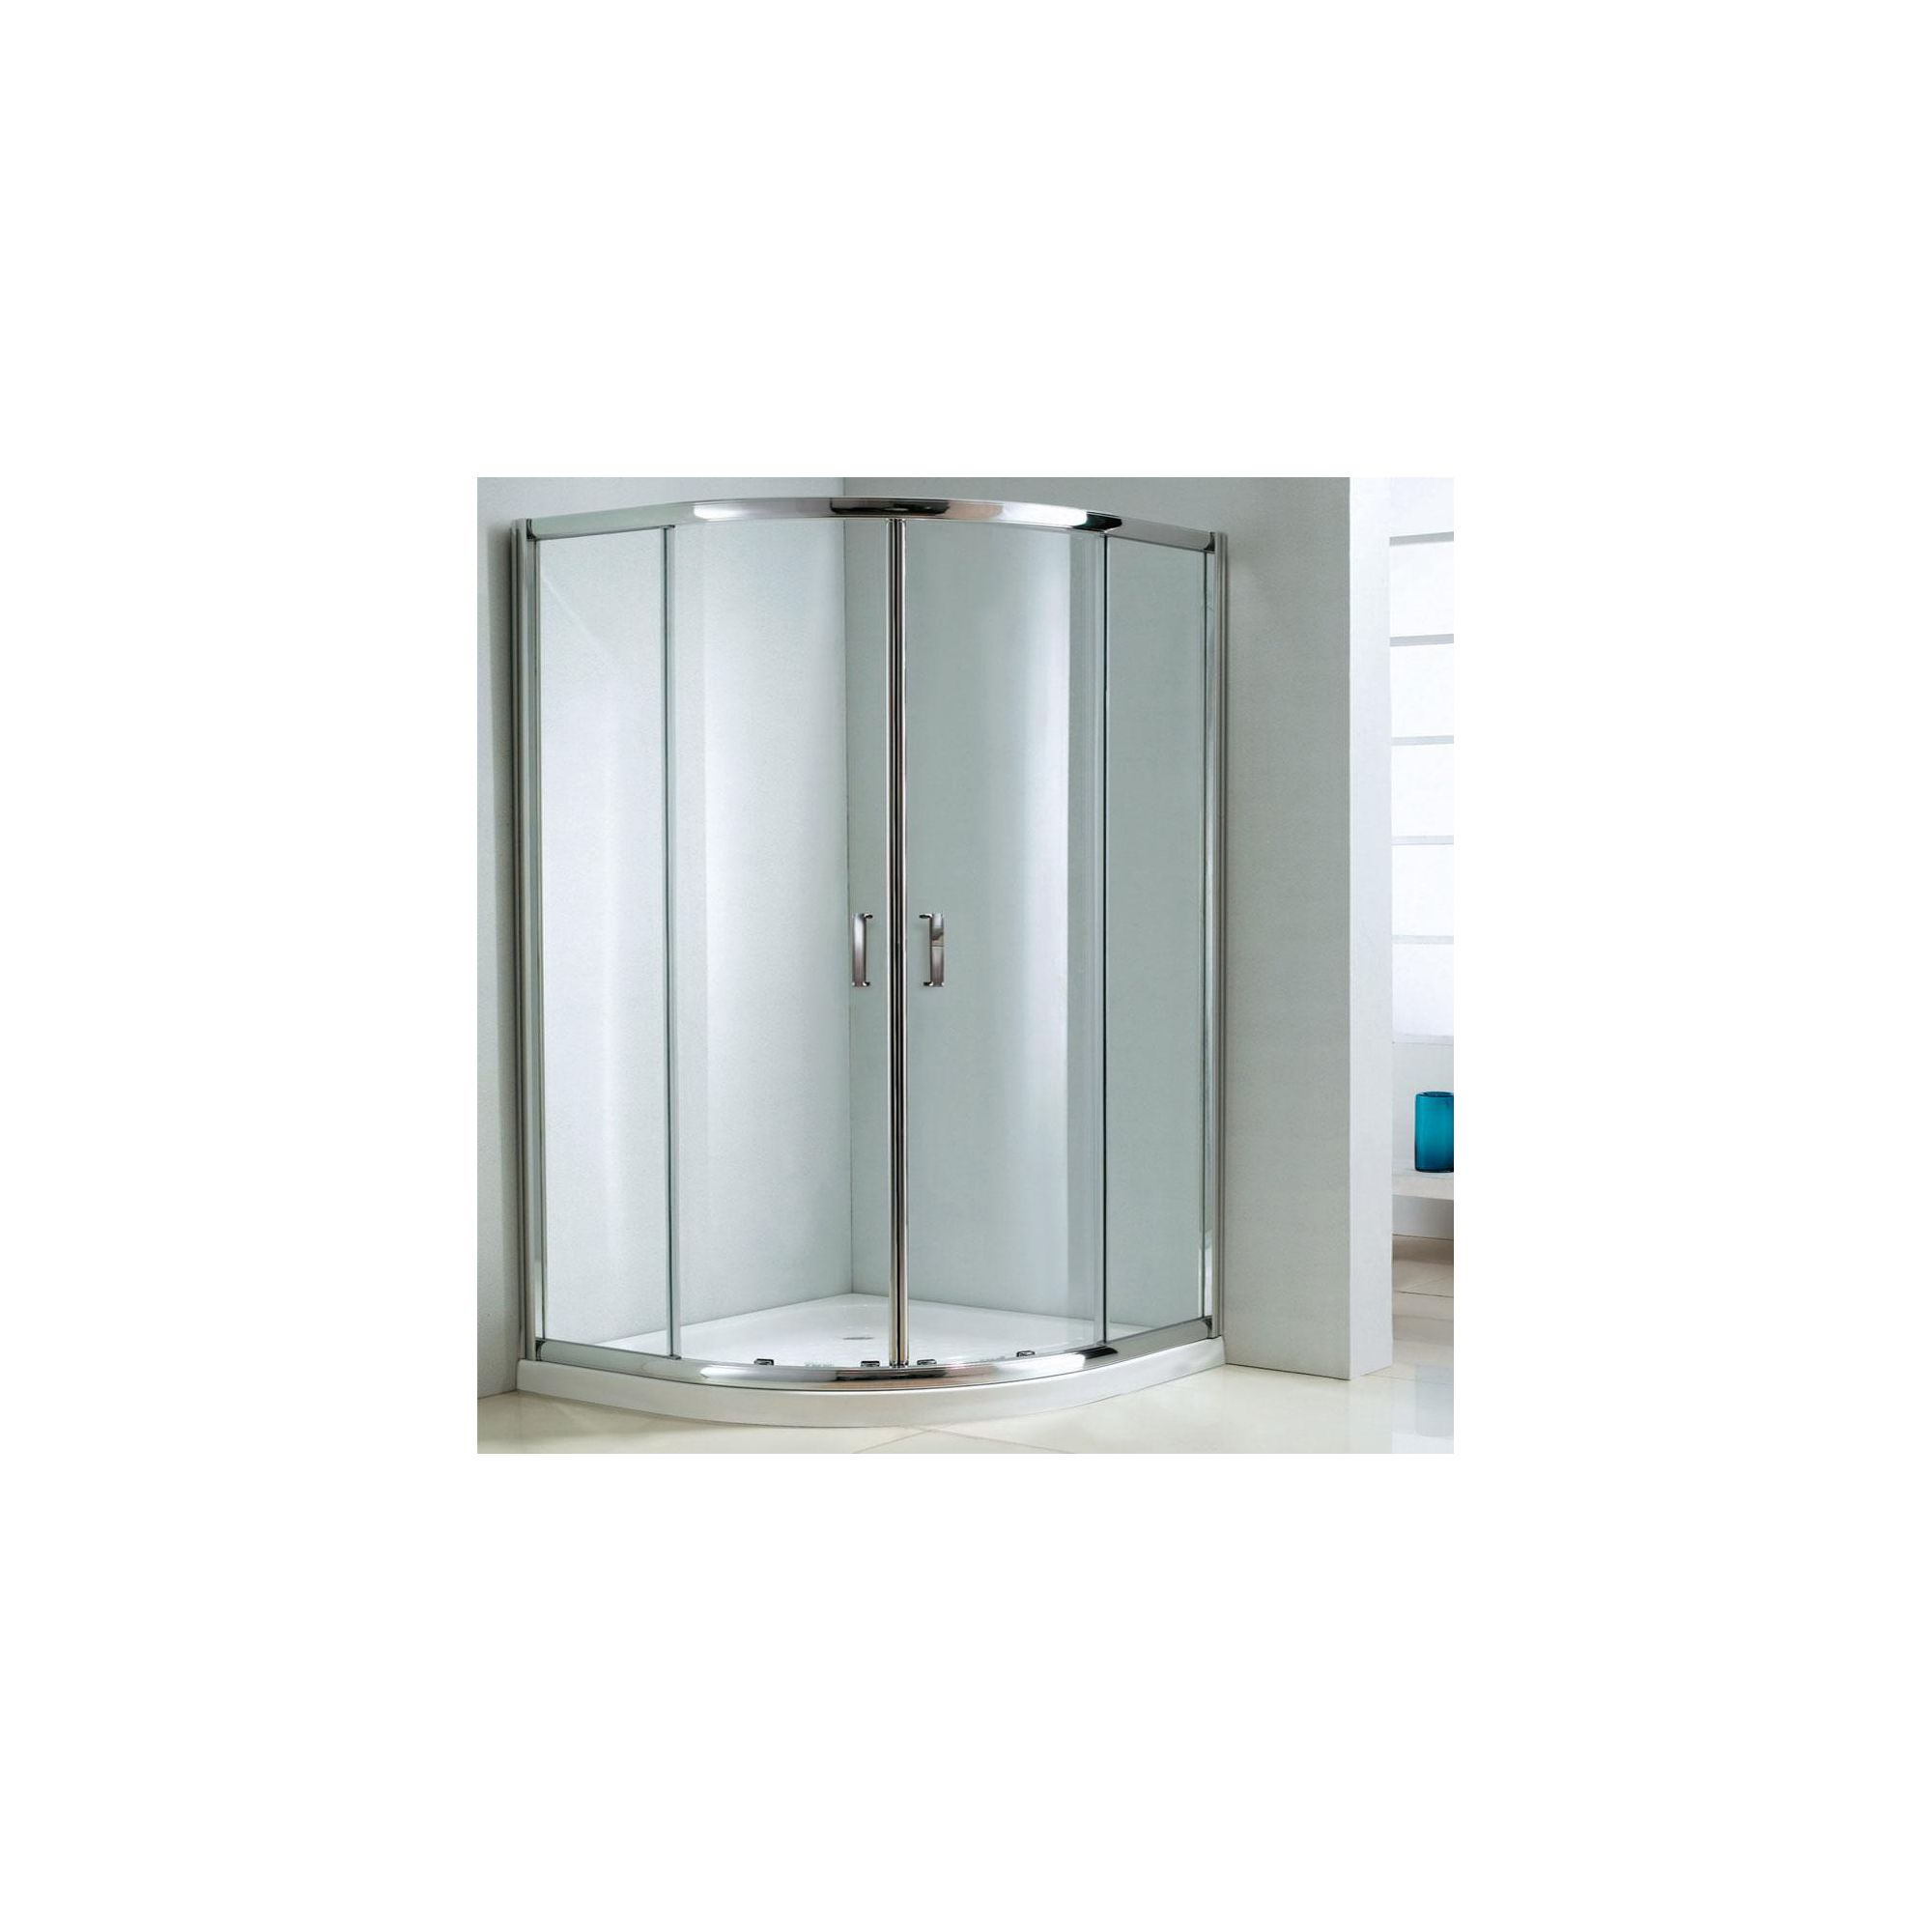 Duchy Style Double Offset Quadrant Shower Door, 1000mm x 800mm, 6mm Glass at Tesco Direct